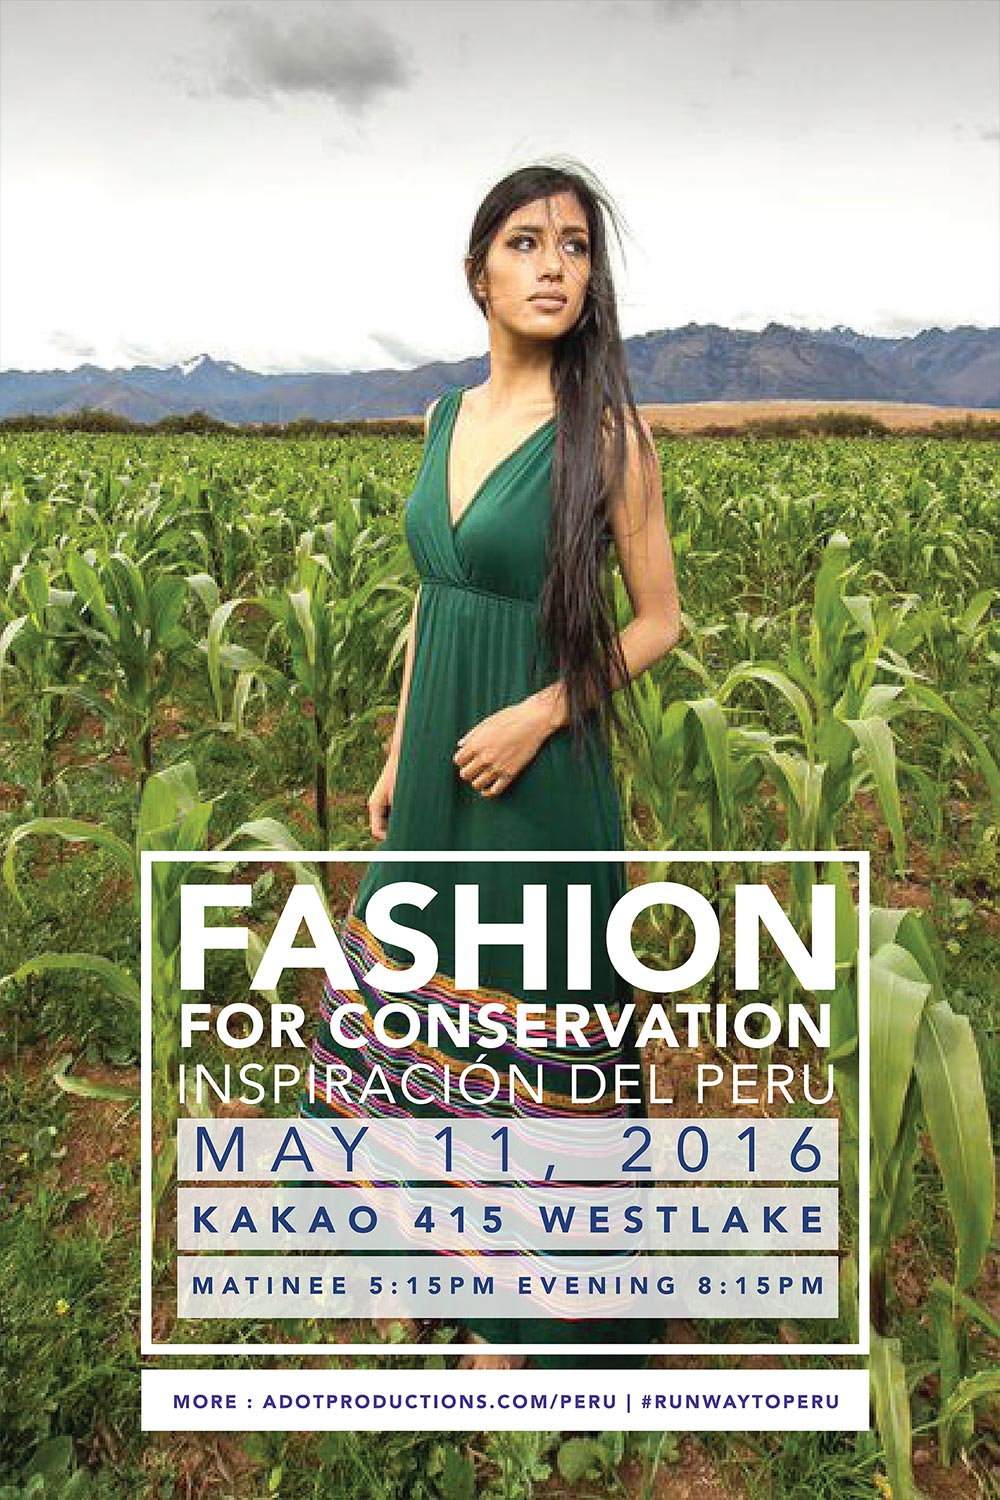 Fashion for conservation: Runway to Peru Fashion Show + Giveaway! - kraft&mint